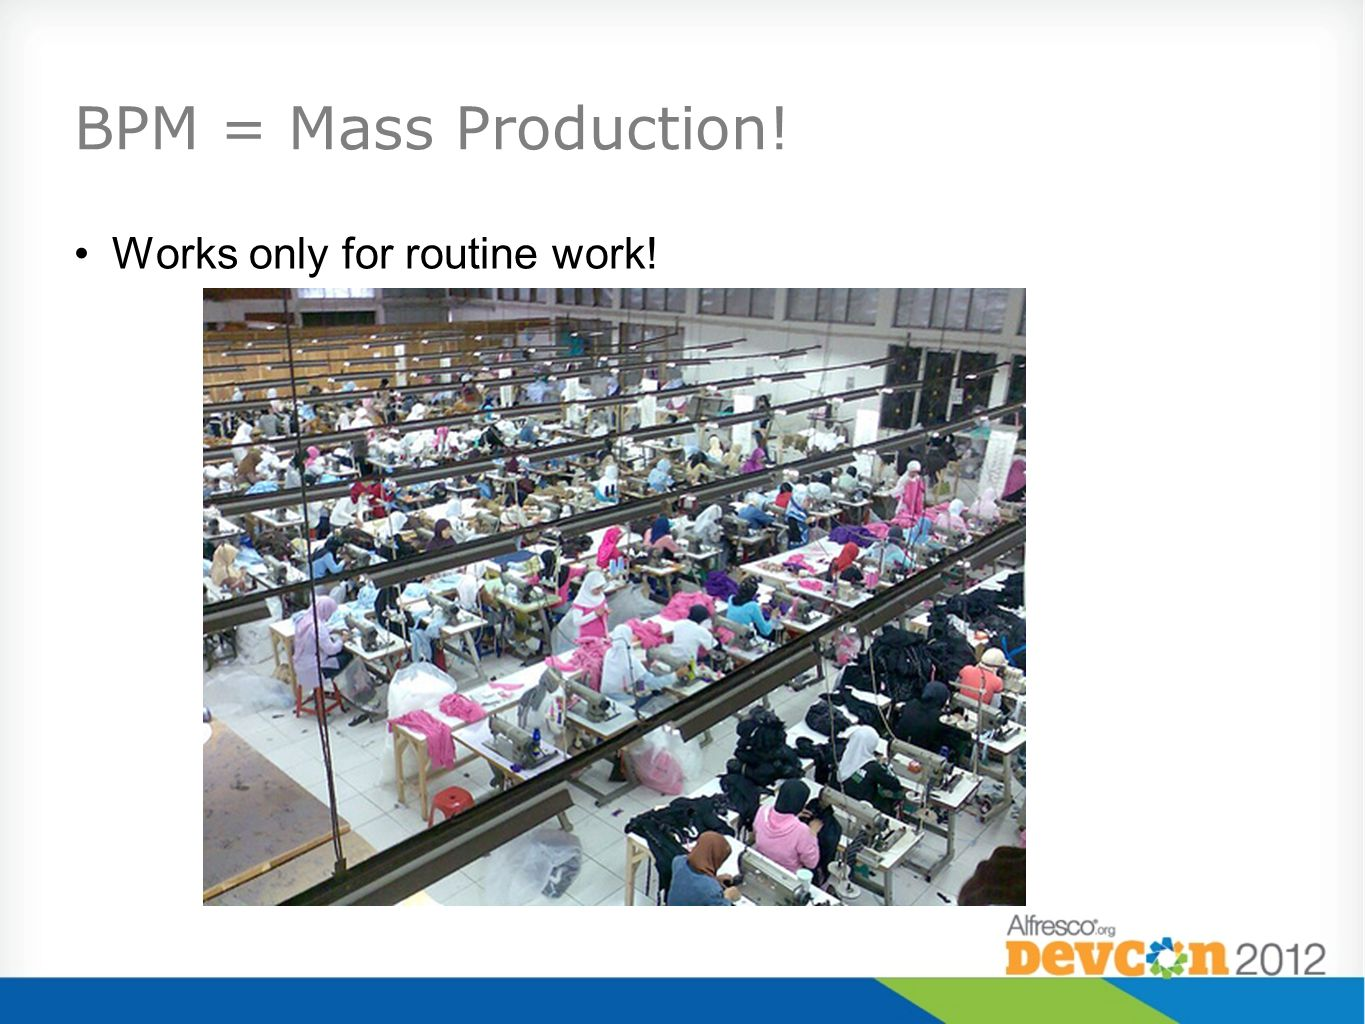 BPM = Mass Production! Works only for routine work!